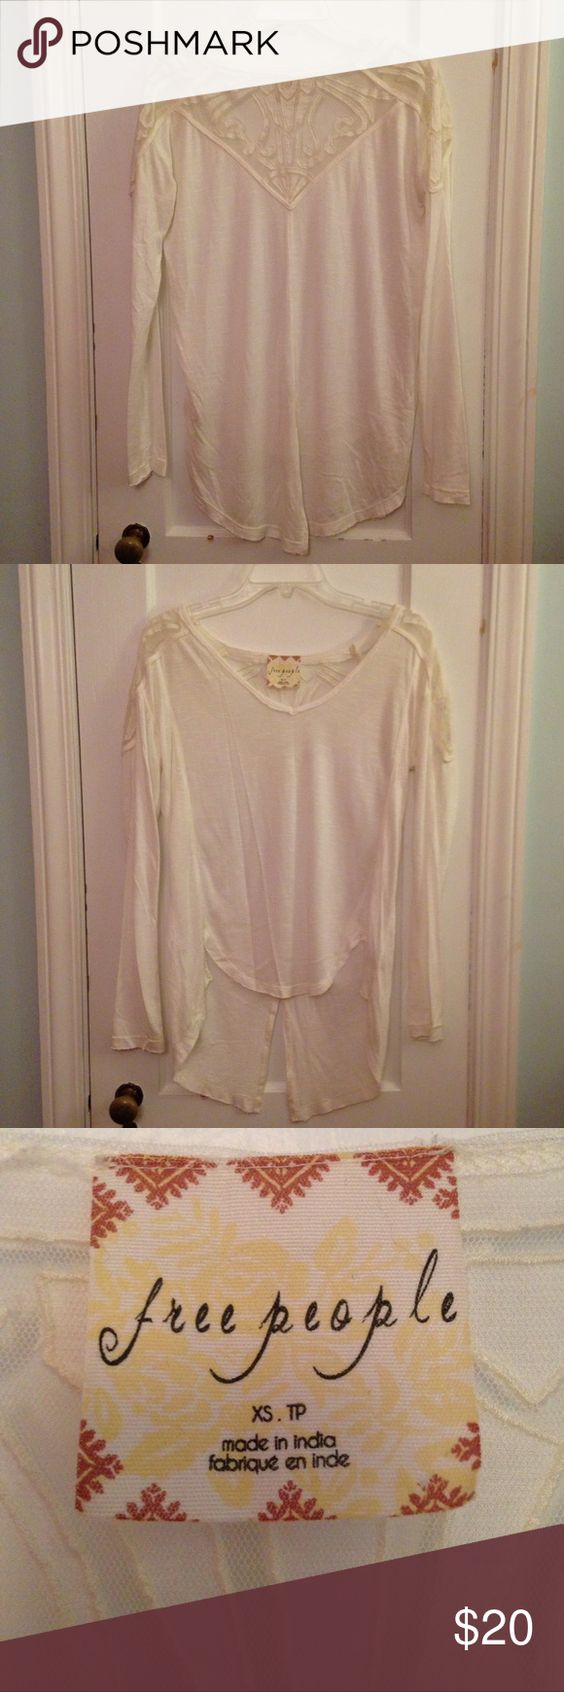 White Free People Long Sleeved Shirt White Free People Long Sleeved Shirt, with lace designs on the back/ shoulder area. Like new! Free People Tops Tees - Long Sleeve